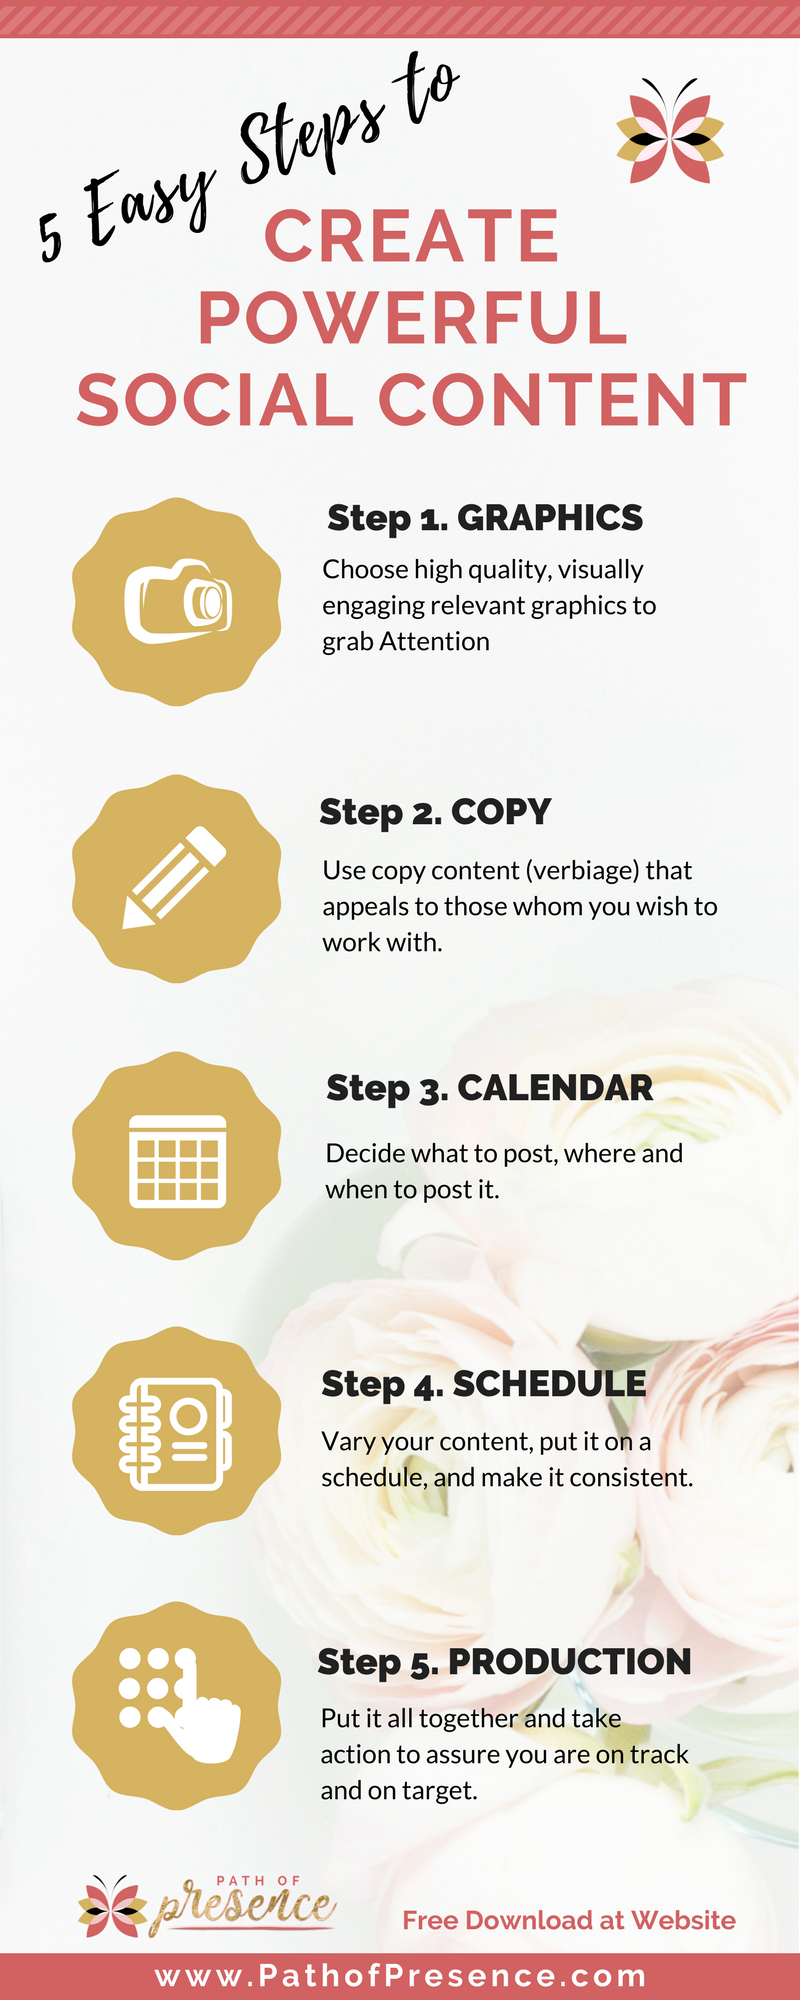 5 easy ways to create powerful social media content - How to create powerful content for social media // social media content ideas // social media content strategy // social media content calendar // social media content planner // social media content info